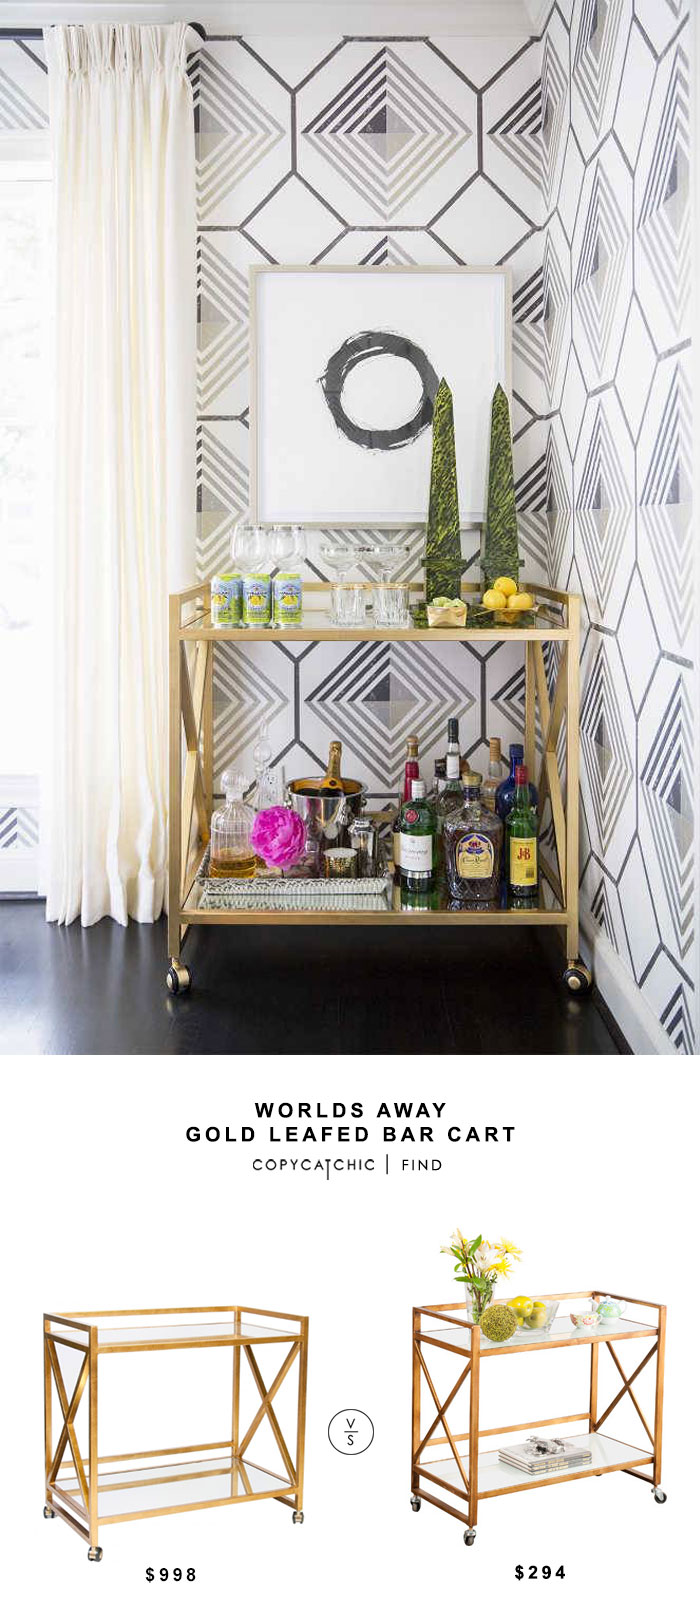 Worlds Away Gold Leafed Bar Cart for $998 vs Mia Bar Serving Cart for $294 copycatchic luxe living for less budget home decor and design